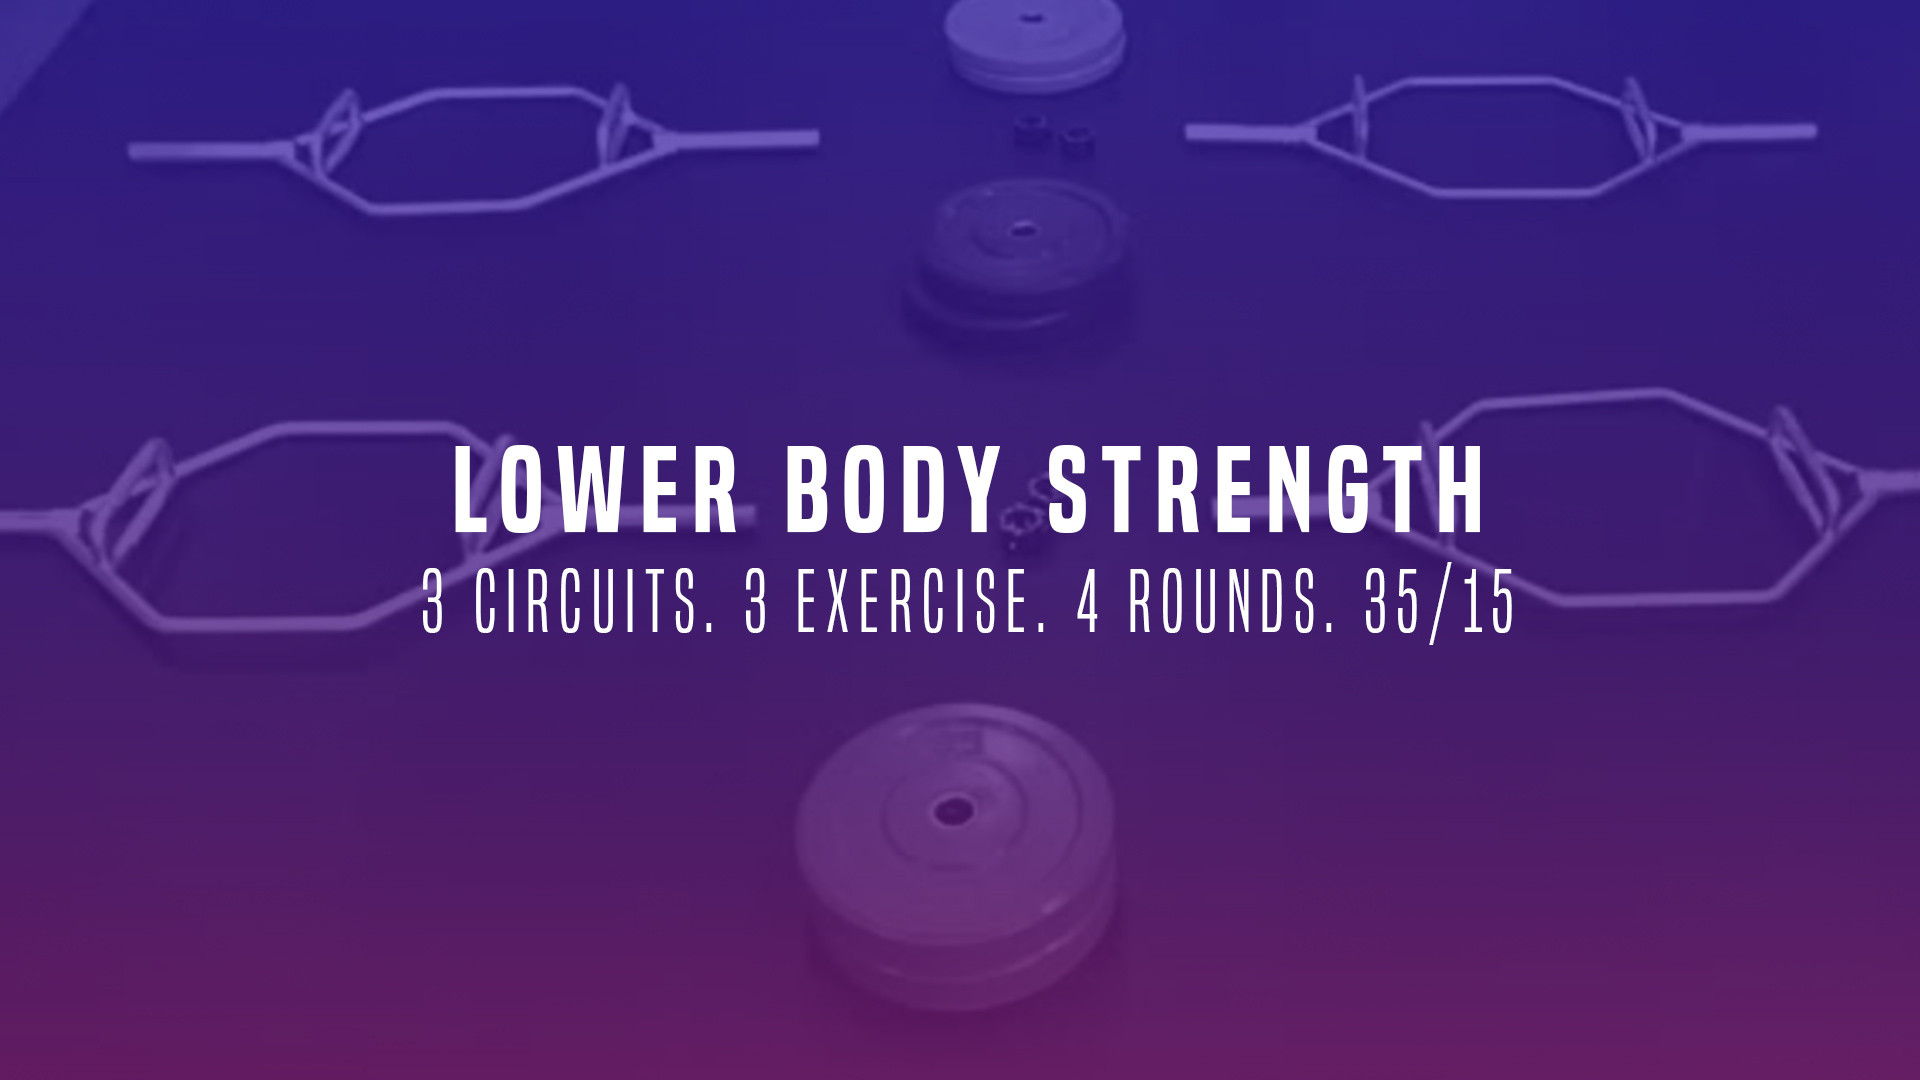 WOD 12: Lower Body Strength Day. 3 Circuits. 3 Exercise. 4 Rounds. 35/15